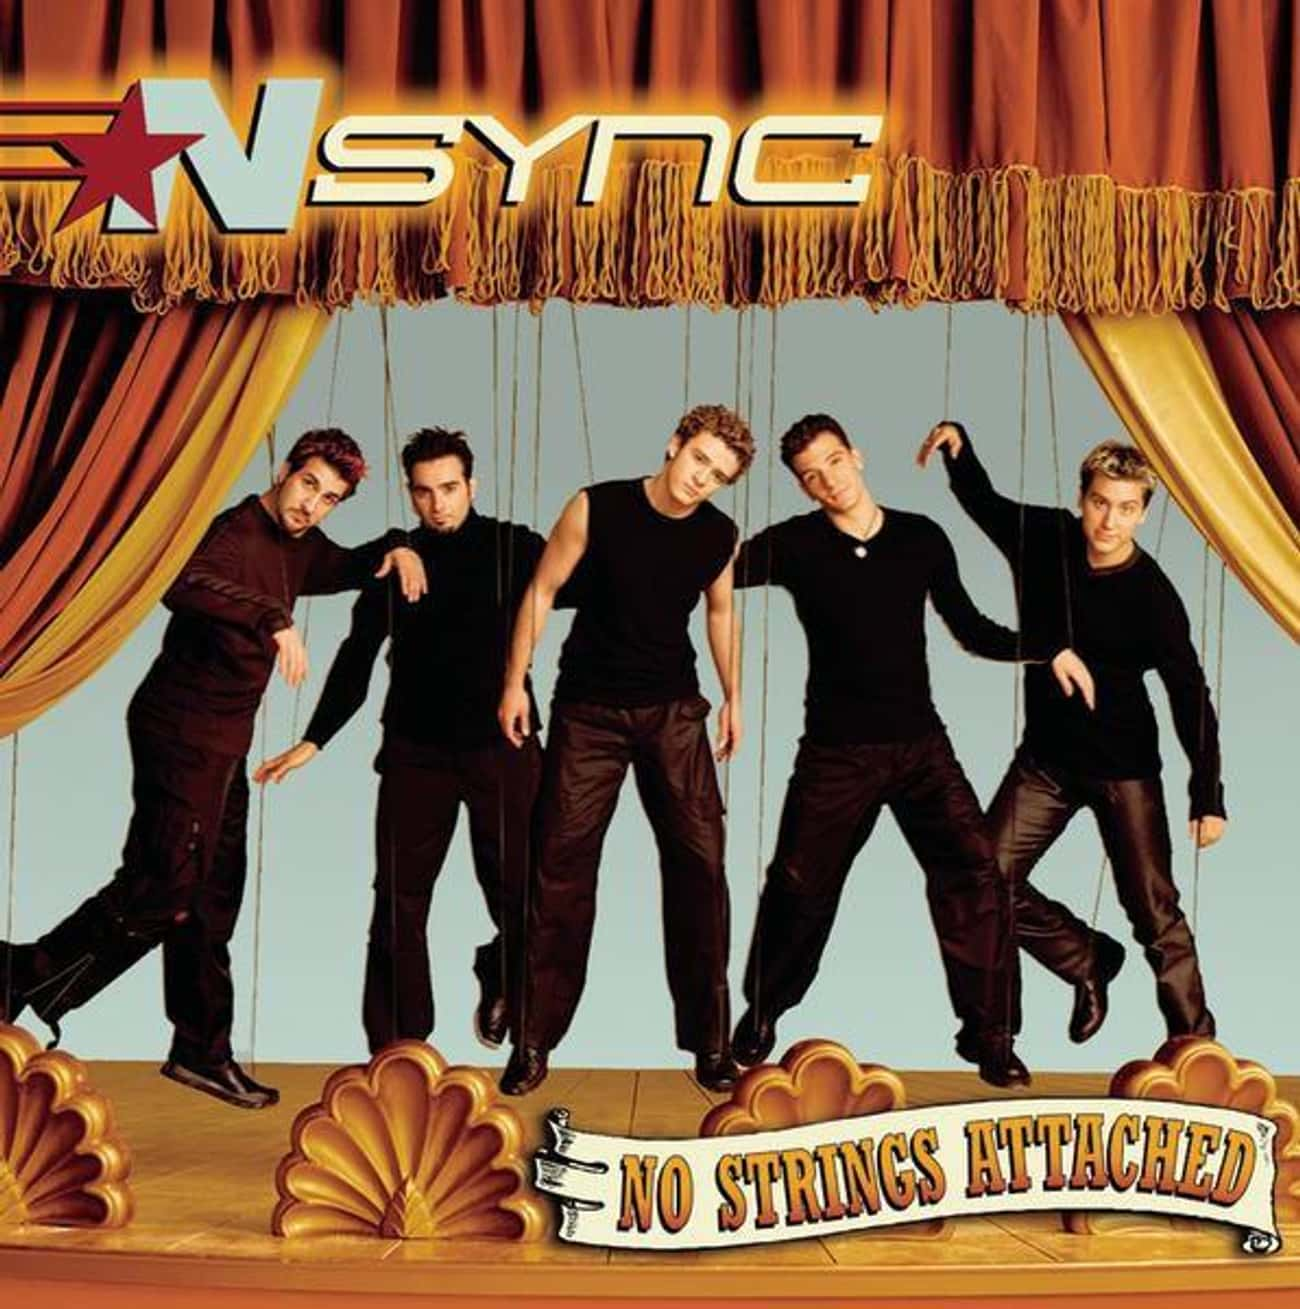 *NSYNC Had As Many Top Ten Hits As BSB Even Though They Only Released Three Albums